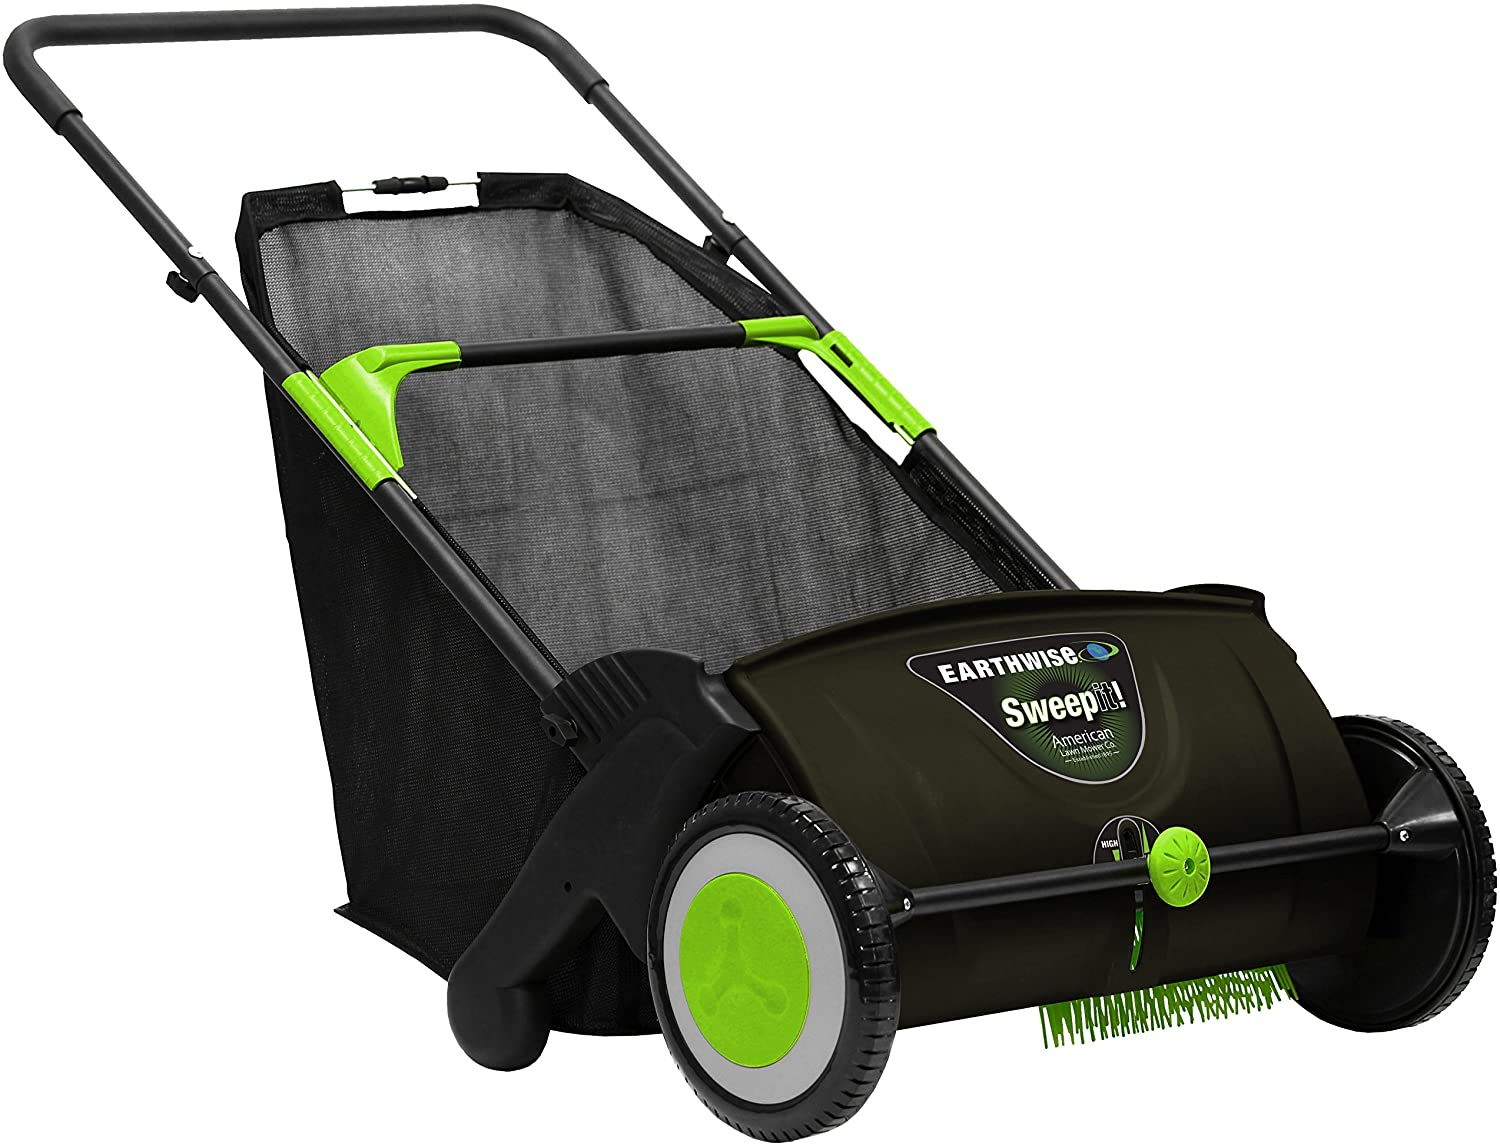 Earthwise 21-Inch LSW70021 Grass & Leaf Push Lawn Sweeper